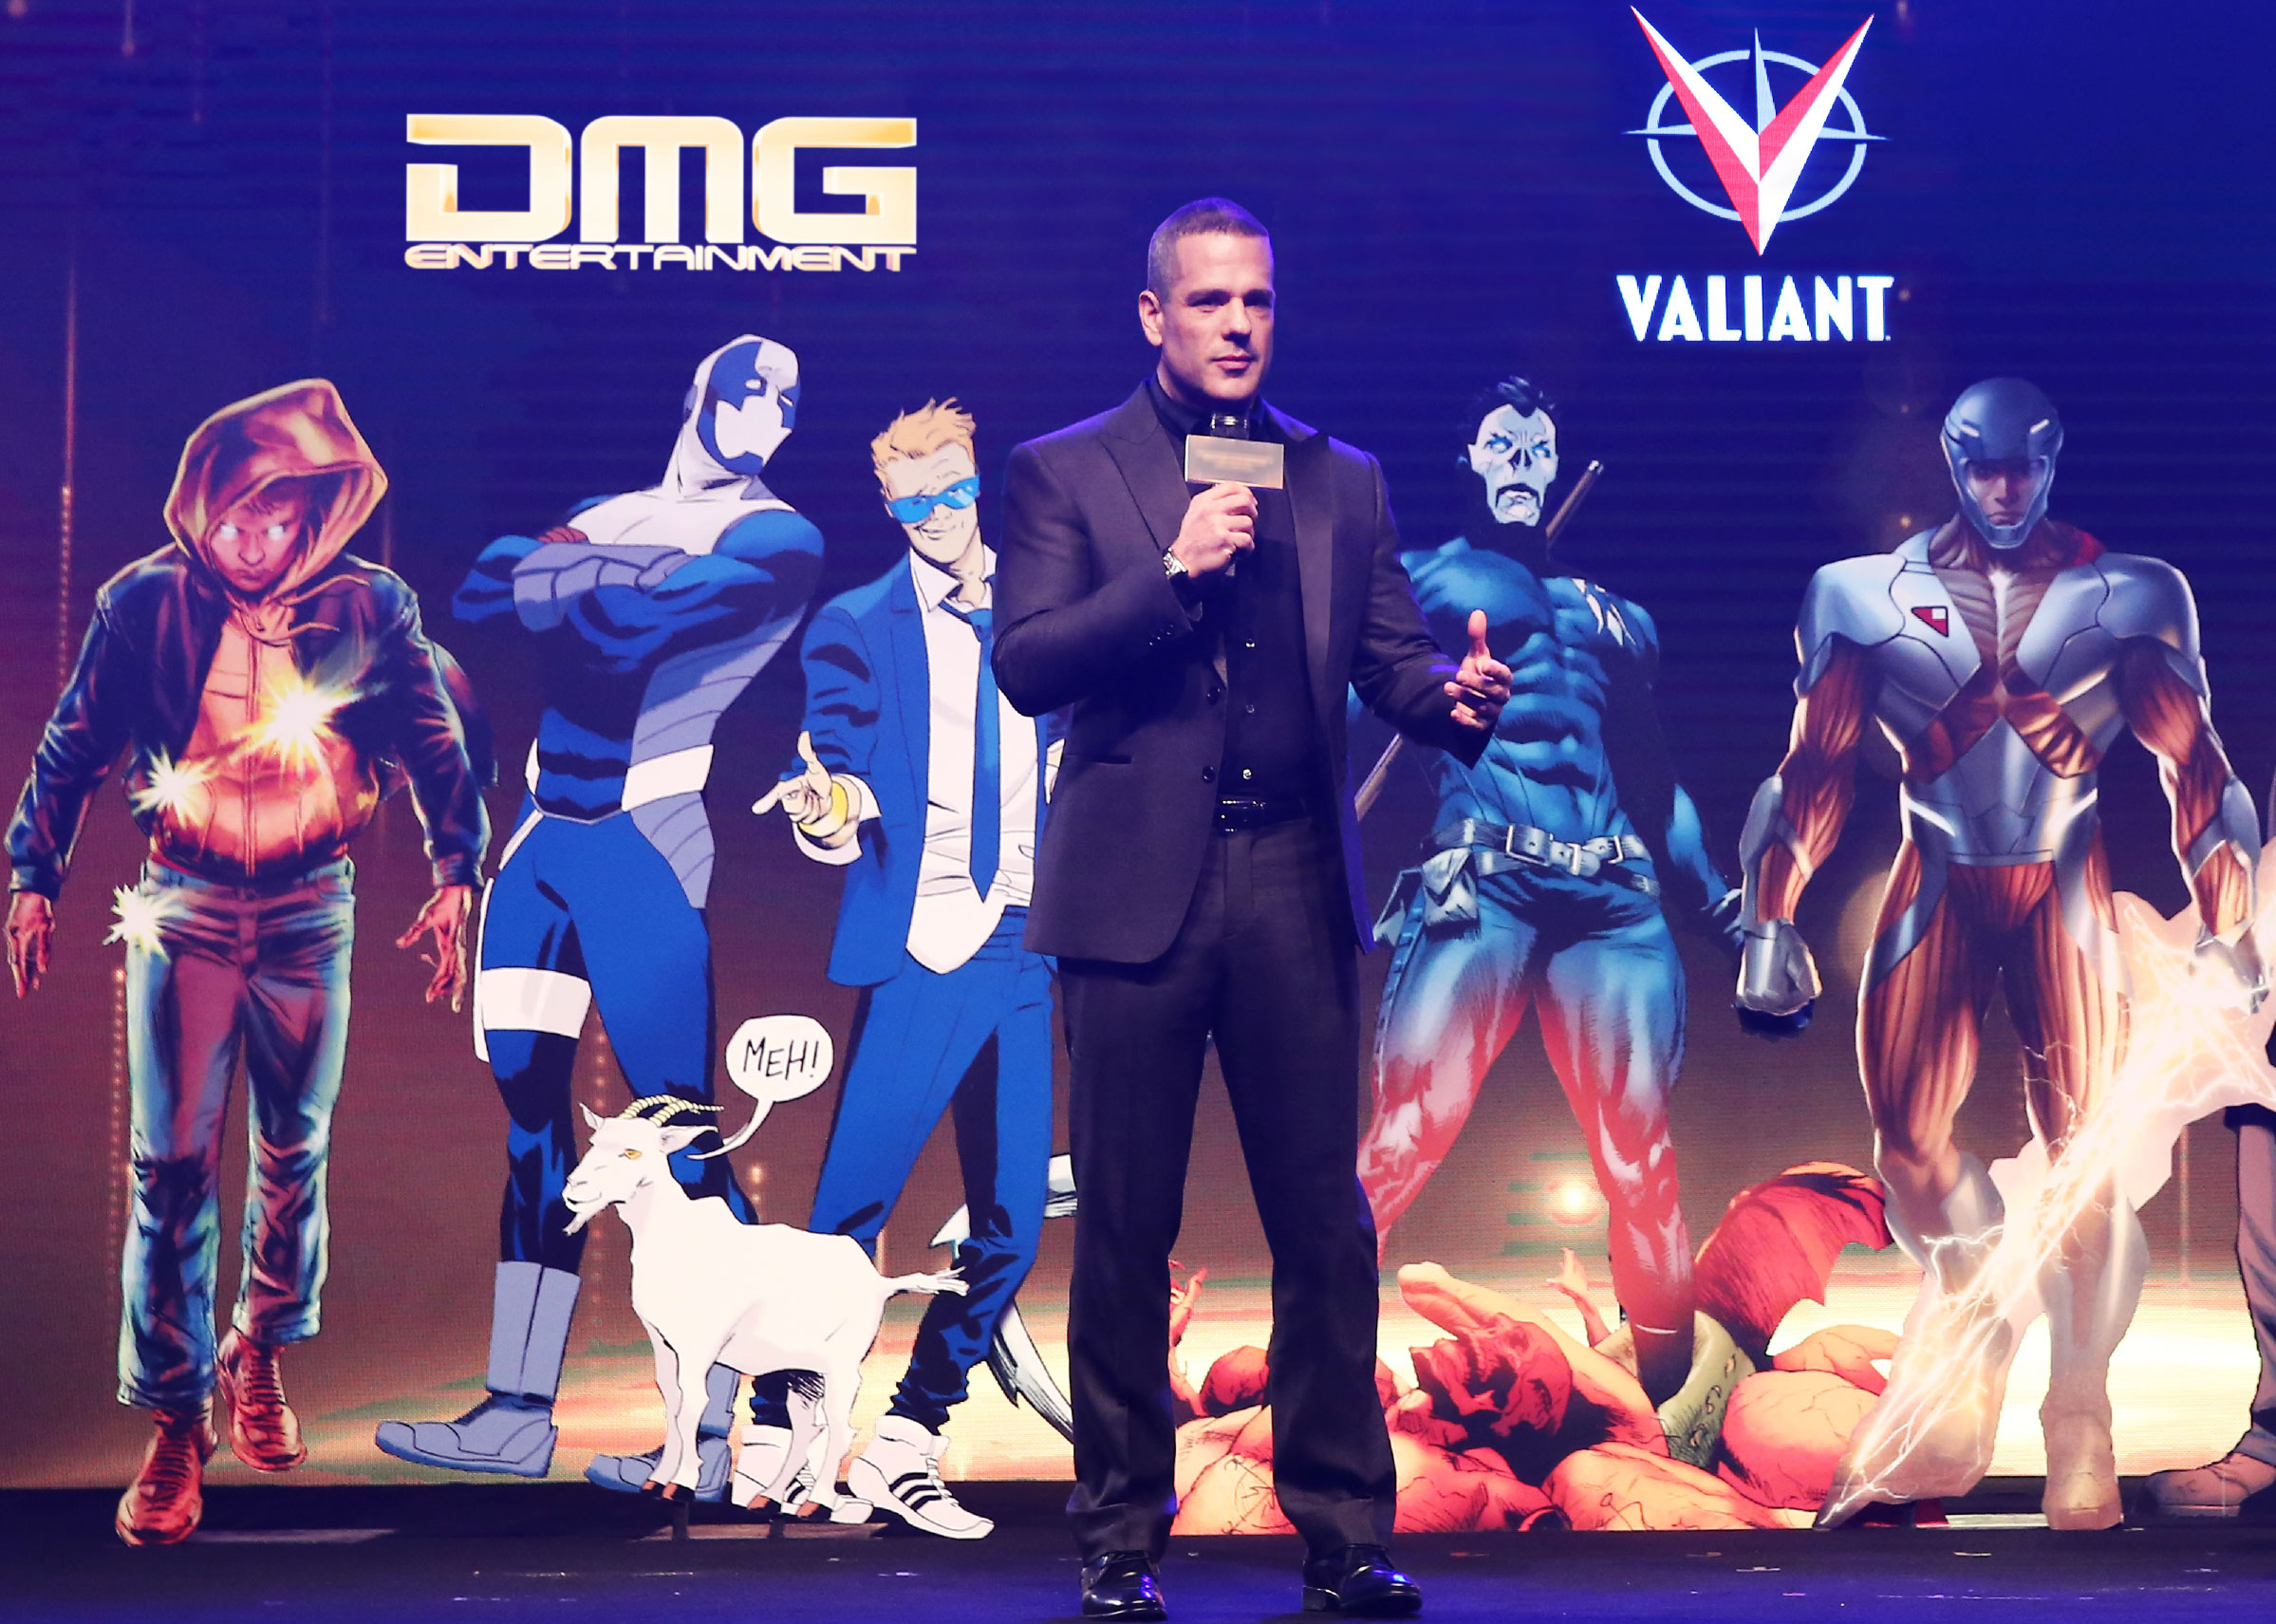 Valiant Entertainment gets one step closer to a cinematic universe